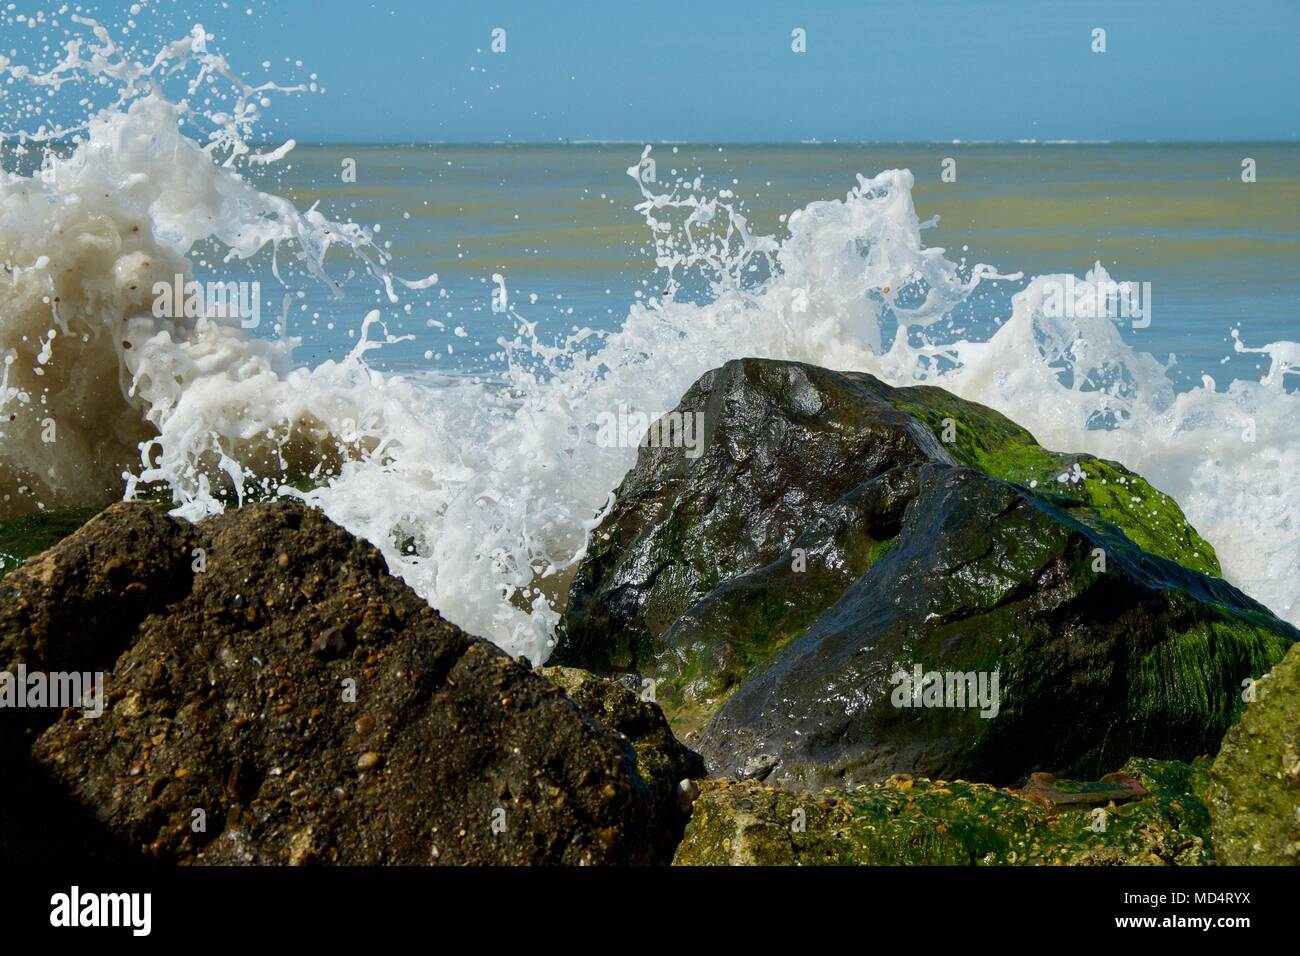 spume and wave on rocks at Colwell Bay, Isle of Wight, United Kingdom - Stock Image